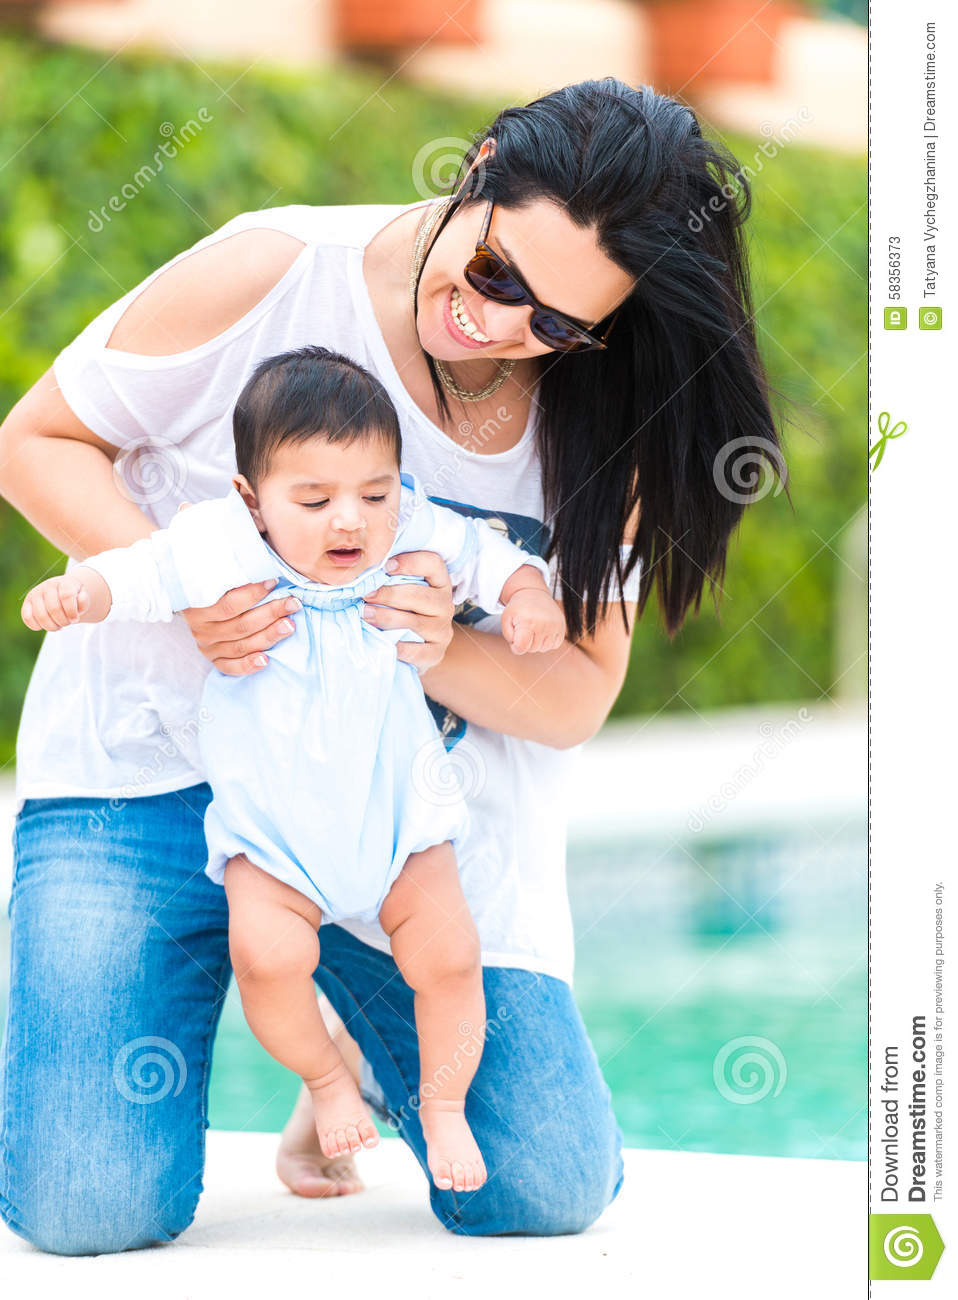 Young Mother With Her Baby Near The Swimming Pool Stock Photo Image 58356373